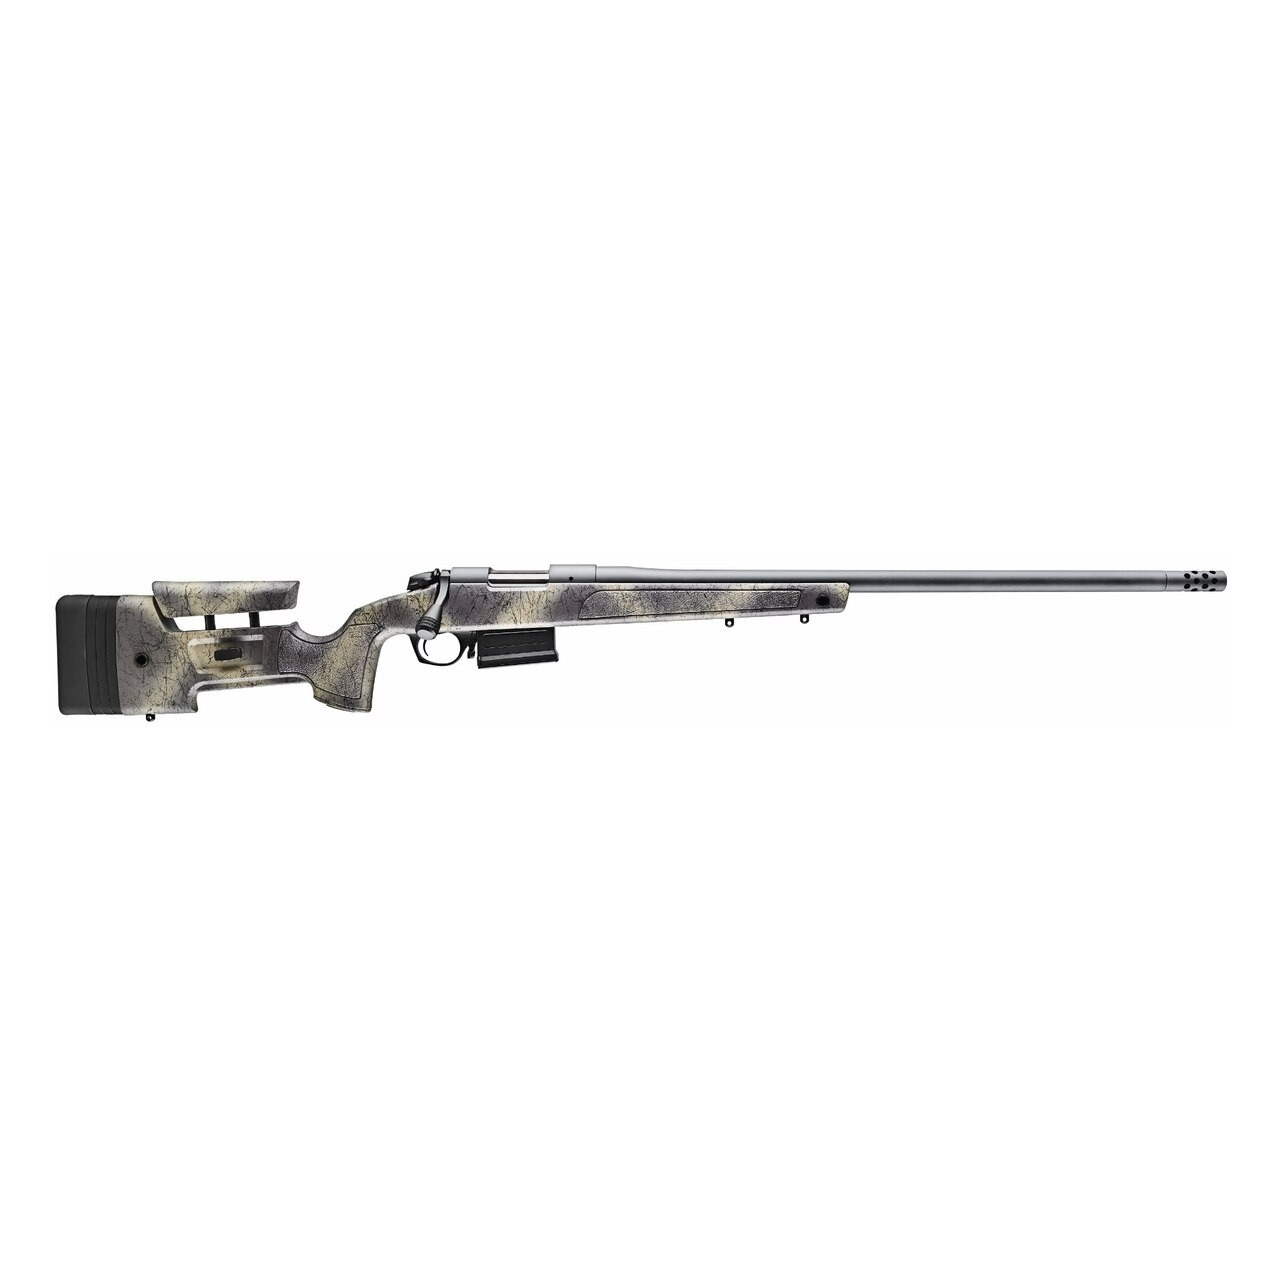 Bergara Rifles B-14 HMR Wilderness 6.5 PRC 3+1 24in. Woodland Camo Molded w/ Mini-Chassis Stock Matte Blued Right Hand